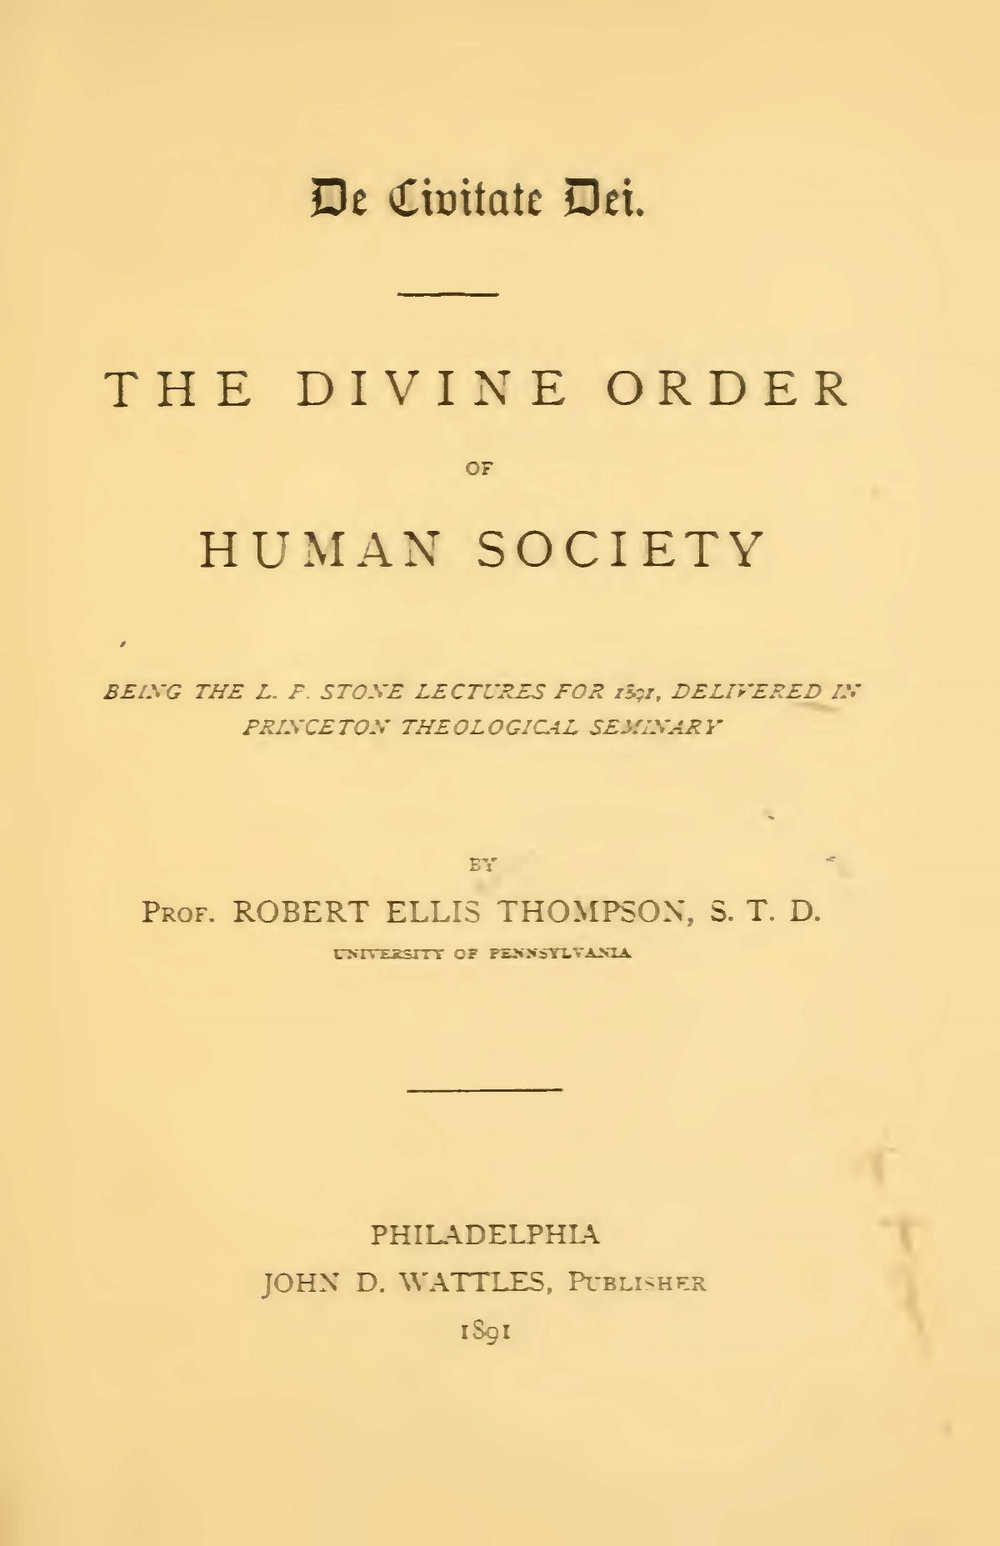 Thompson, Robert Ellis, The Divine Order of Human Society Title Page.jpg